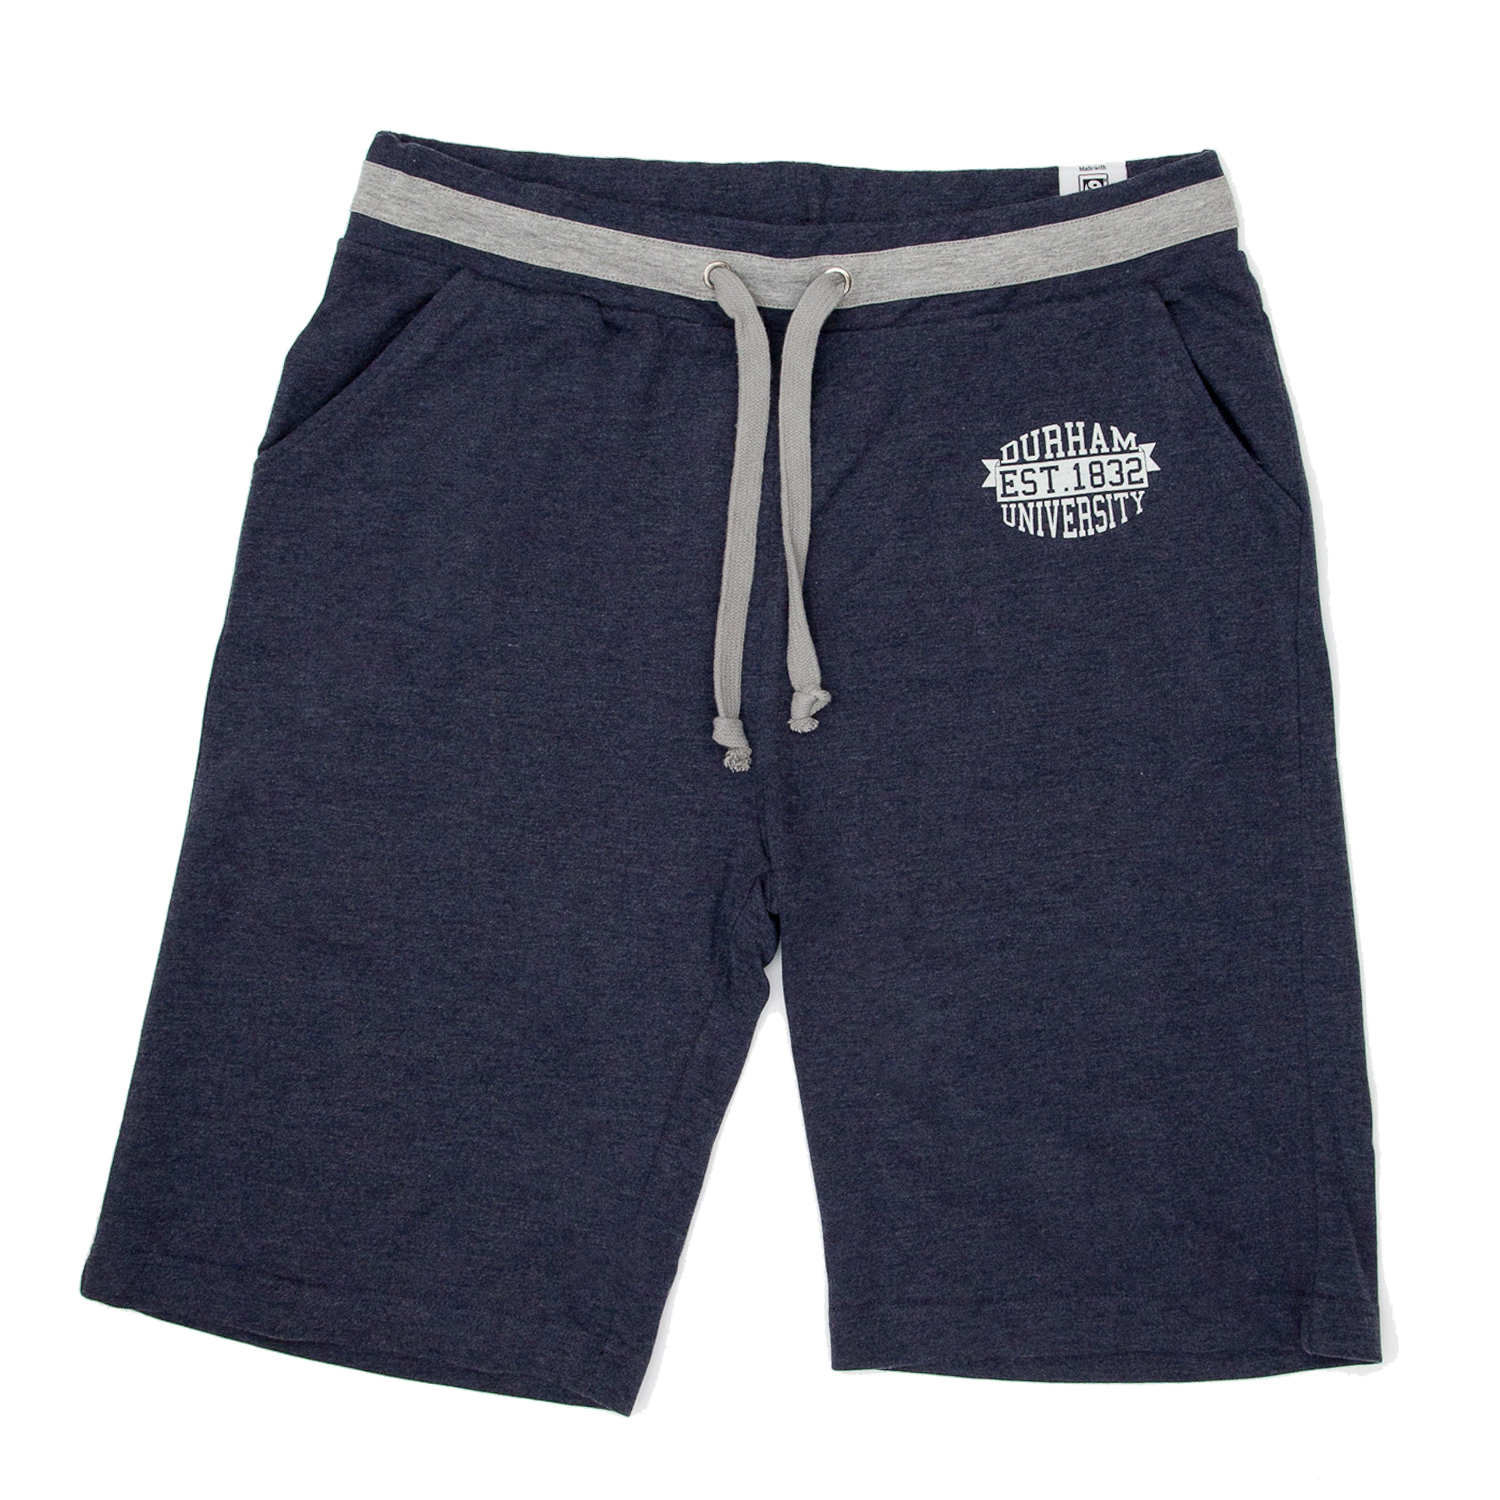 Mens Shorts Denim at Durham University Official Shop